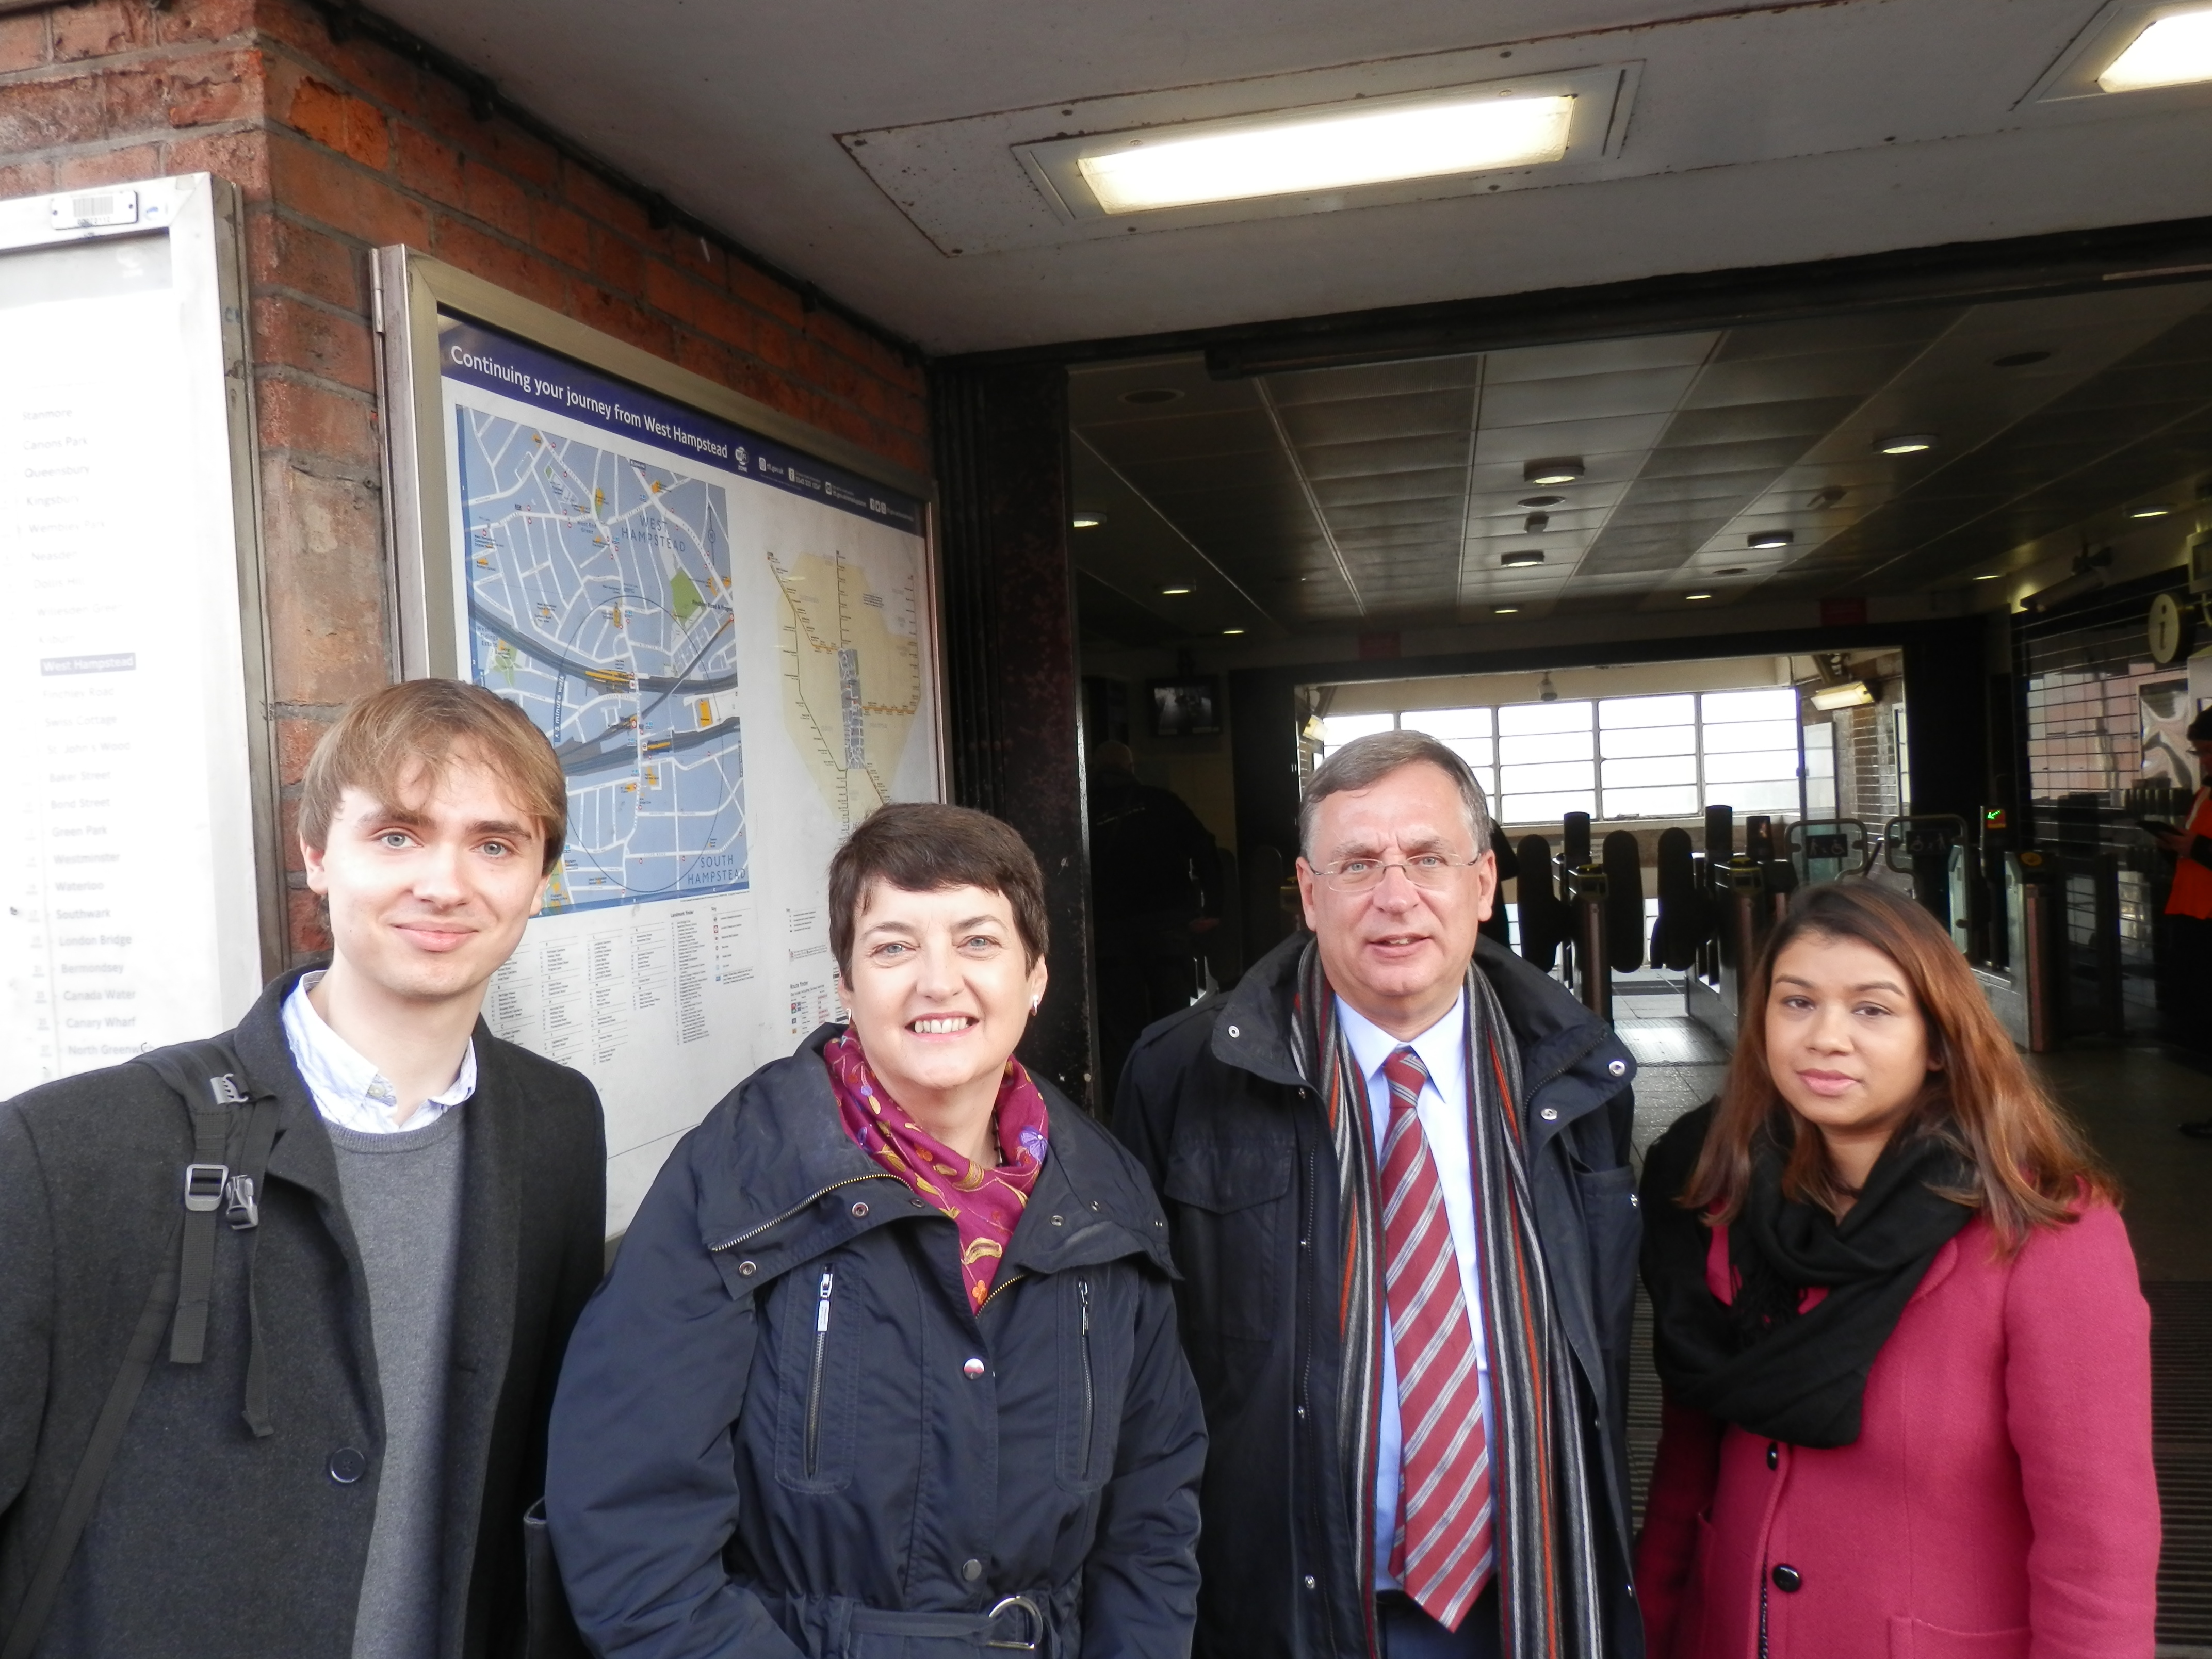 Cllr james Yarde, Val Shawcross, Andrew Dismore AM and Tulip Siddiq MP